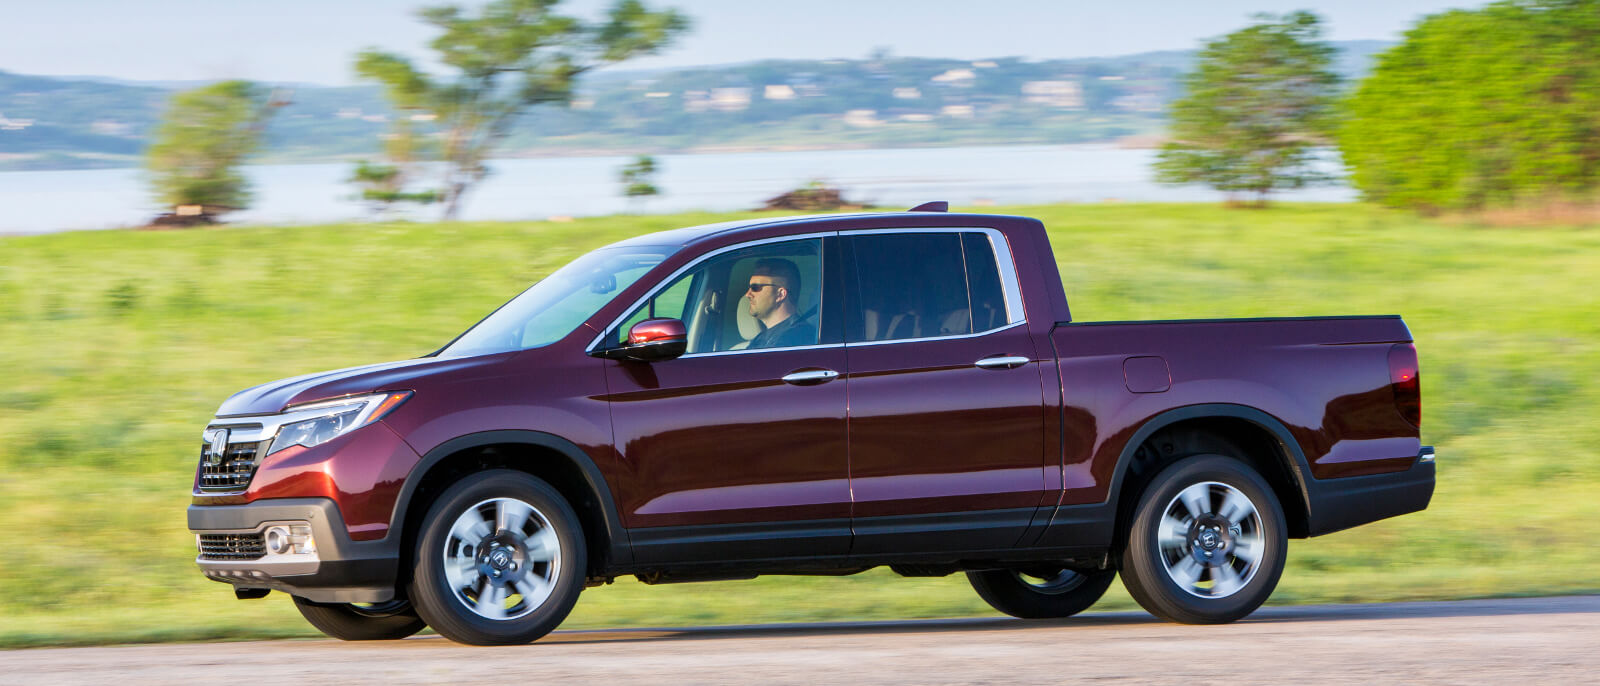 2017-Honda-Ridgeline-red